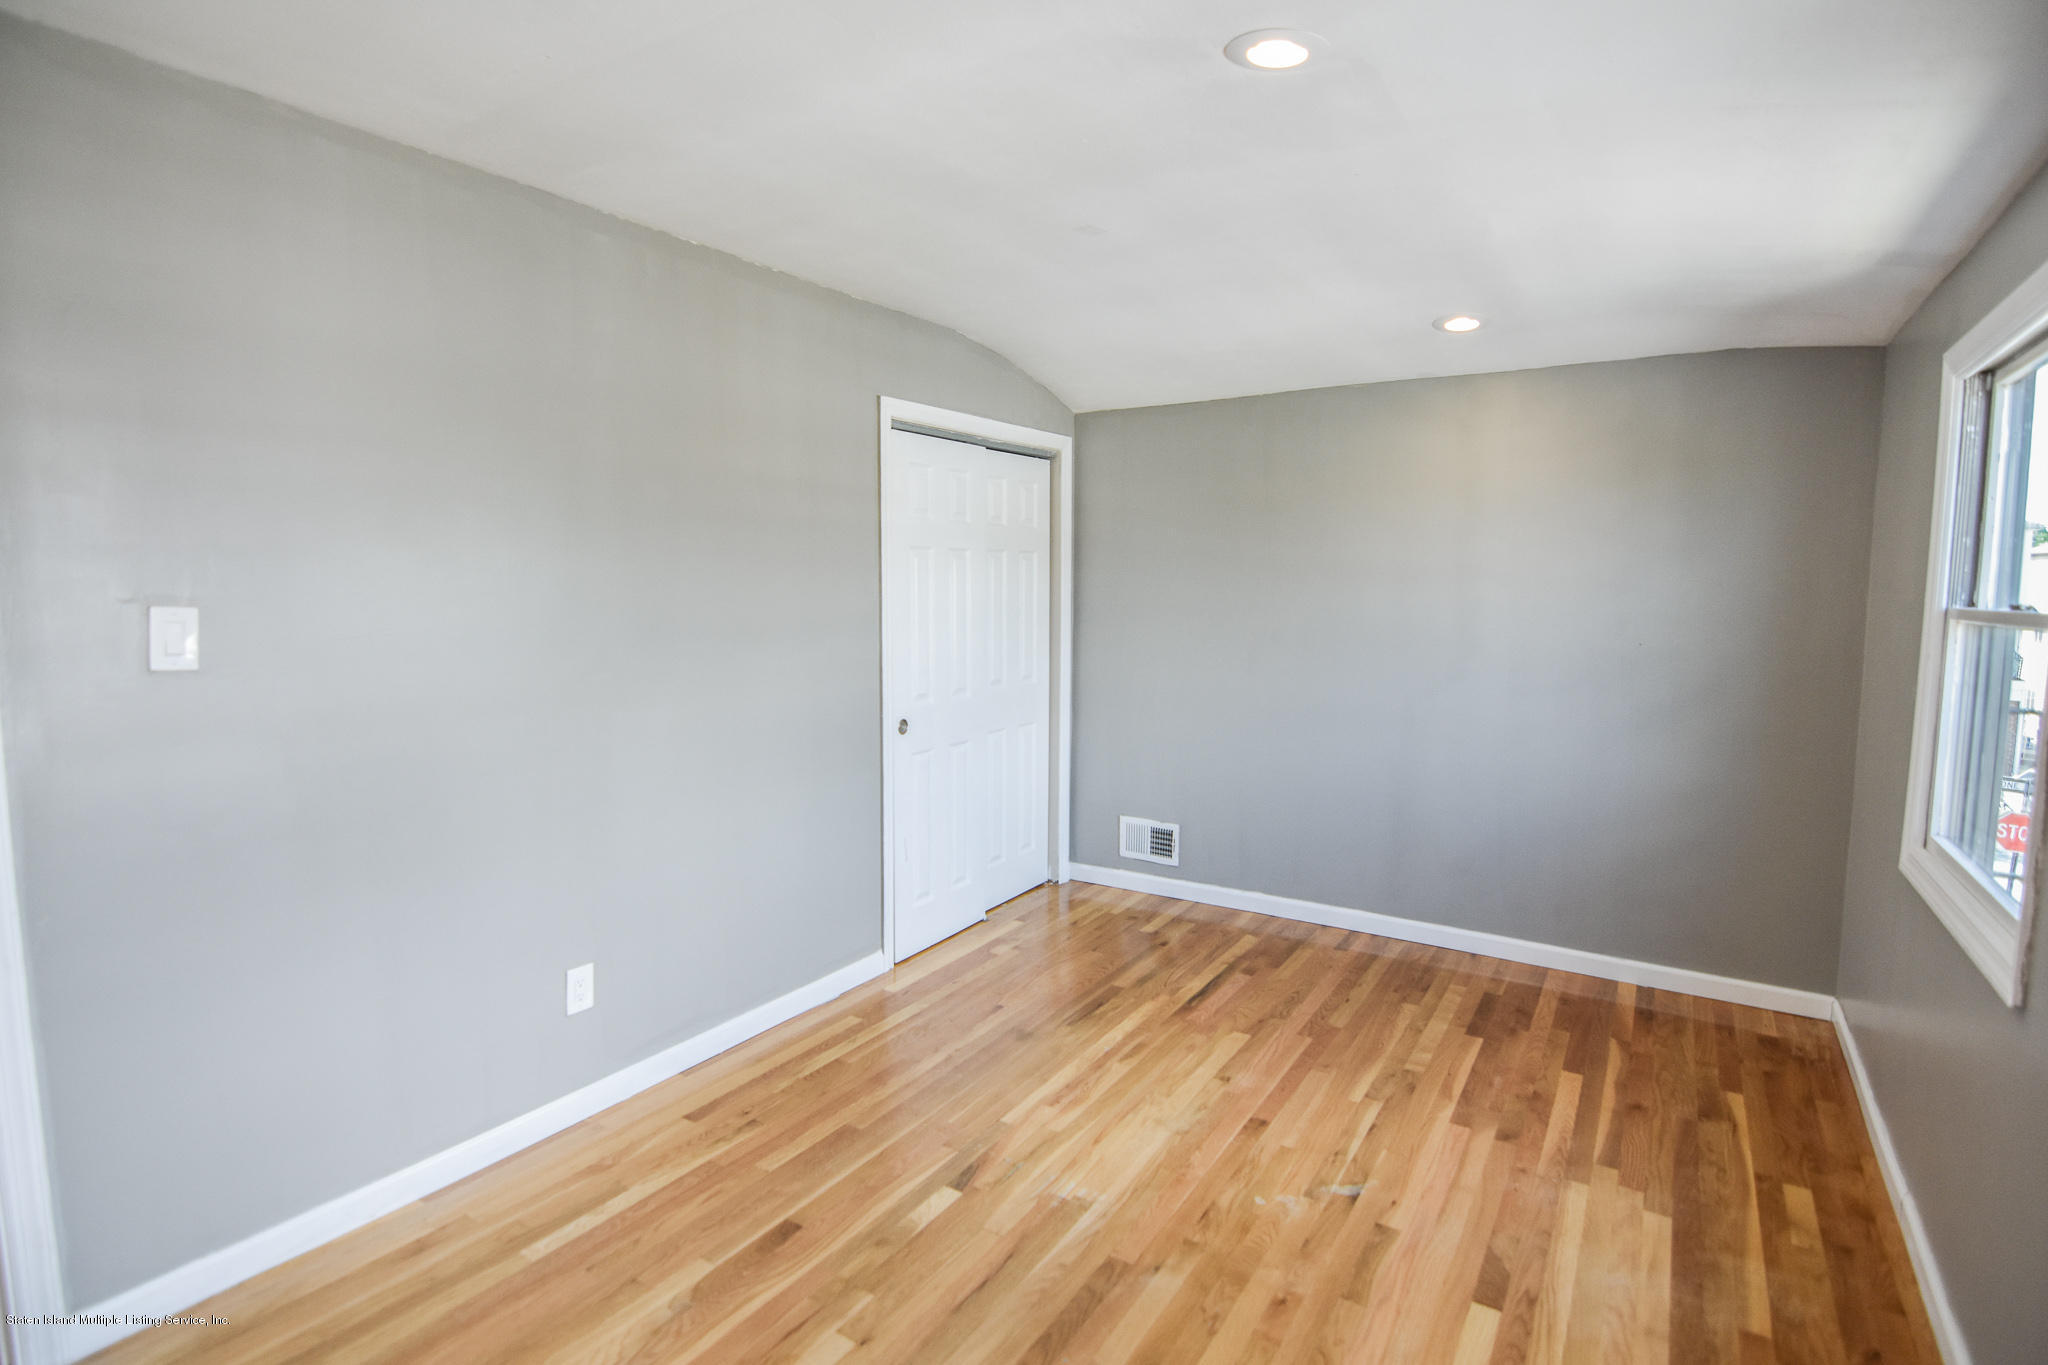 Single Family - Semi-Attached 12 Ebey Lane  Staten Island, NY 10312, MLS-1131132-16